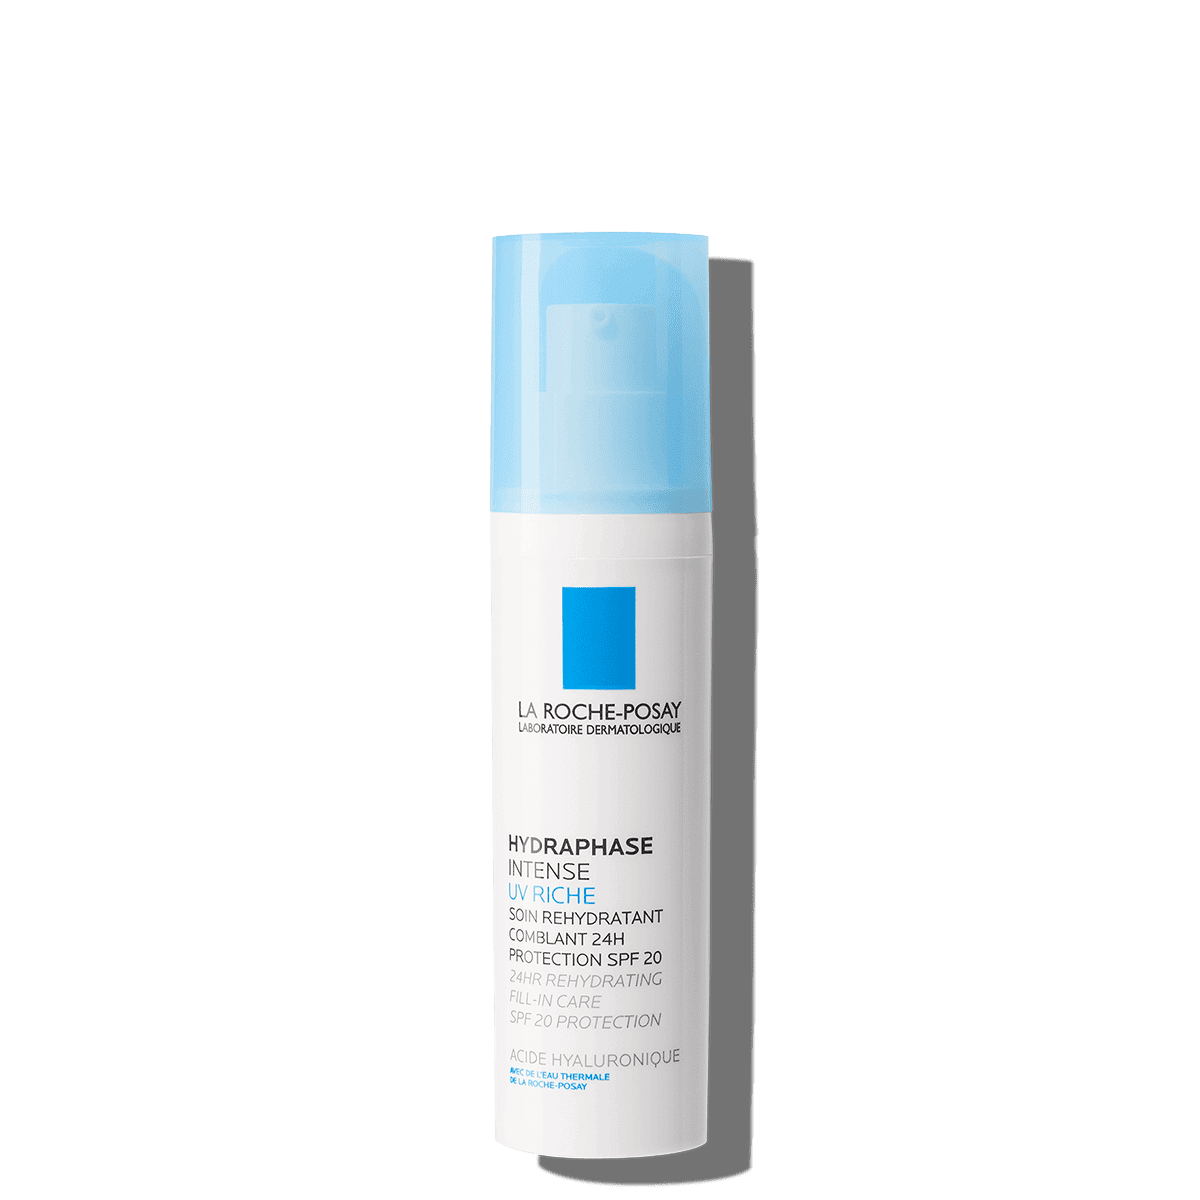 La Roche Posay ProductPage Hydraphase UV Intense Rich Spf20 50ml 33378